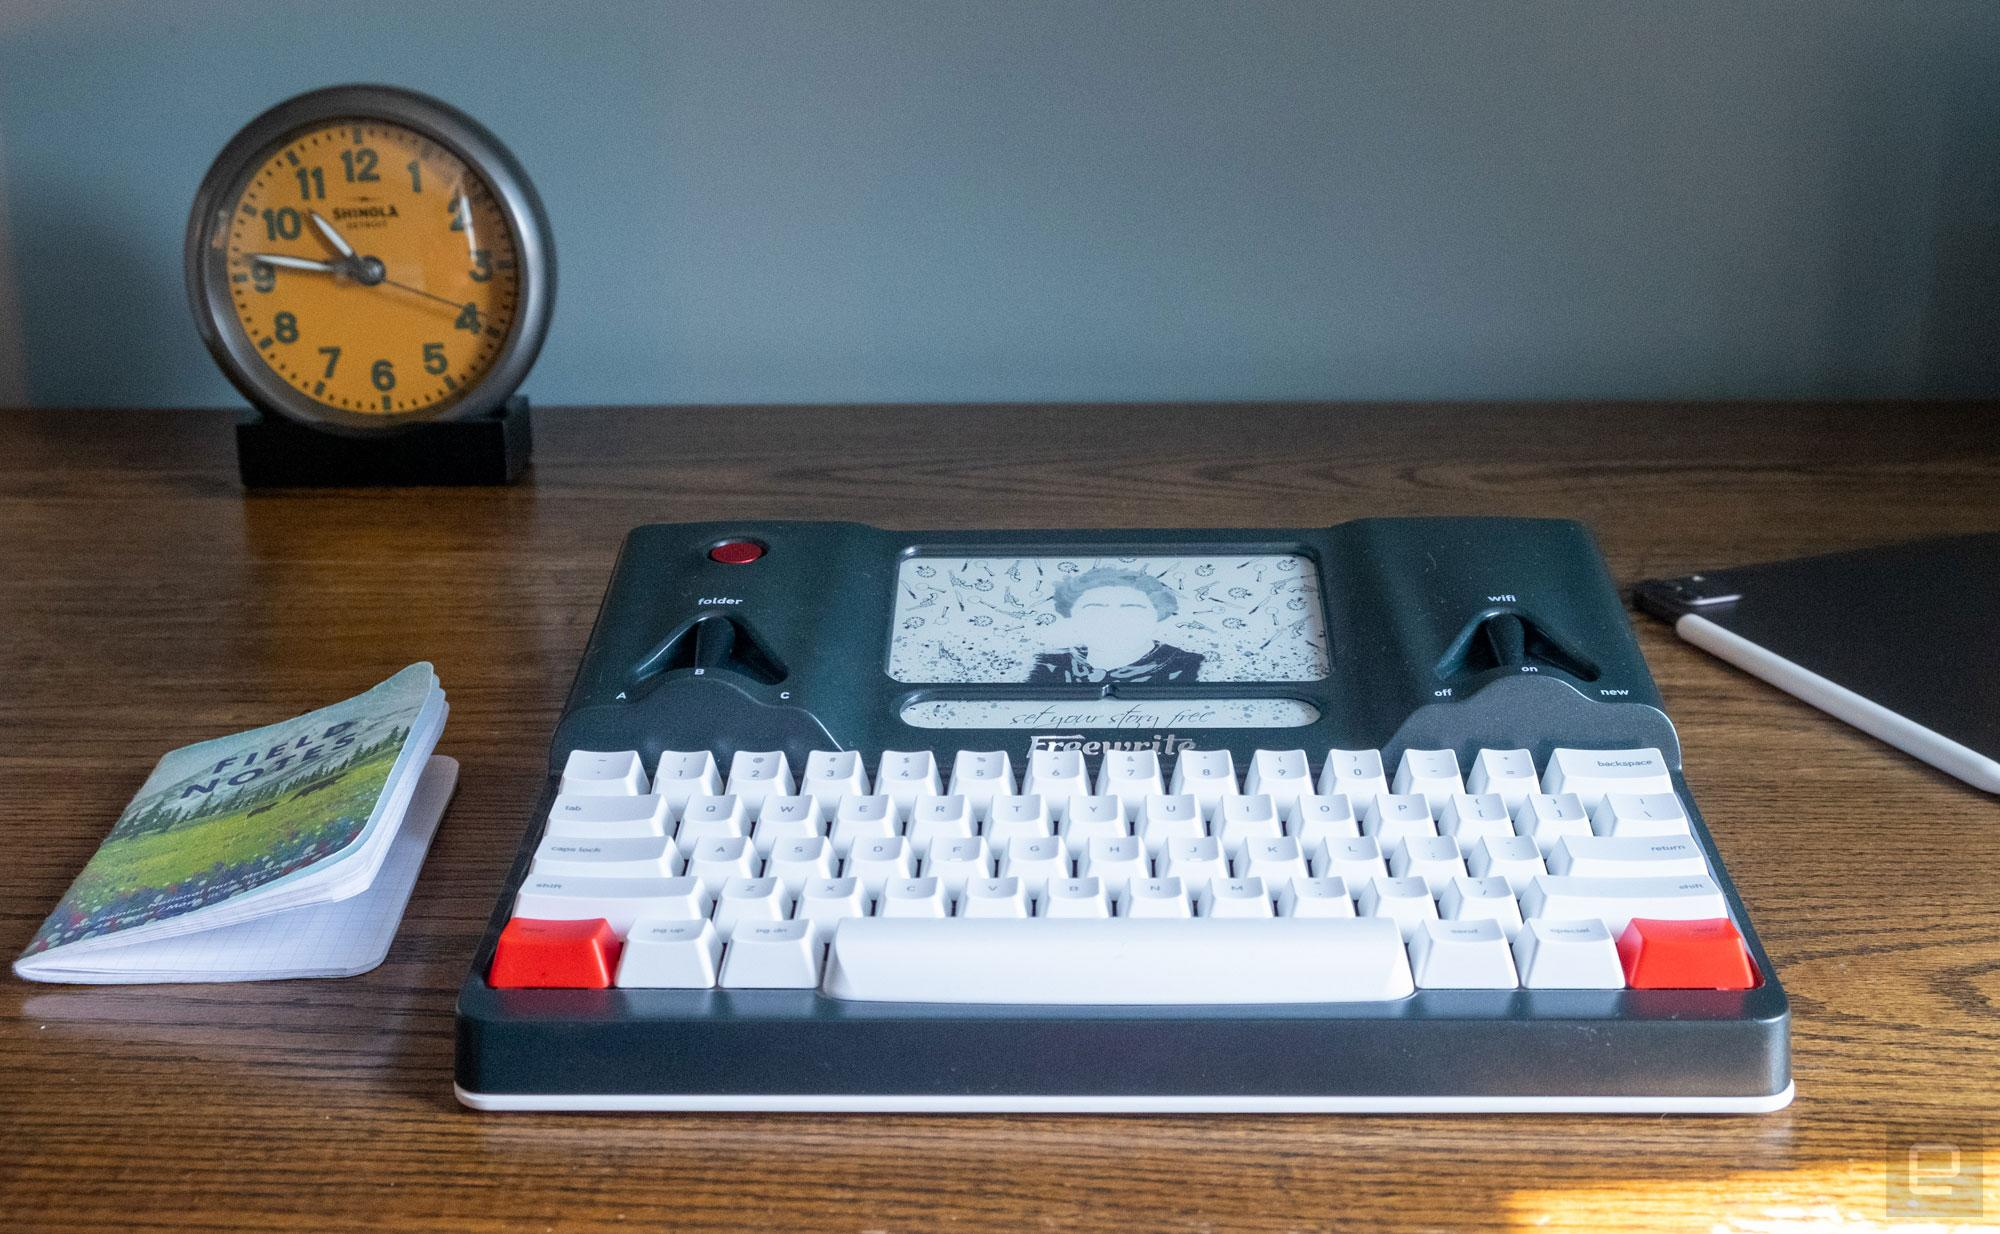 The Freewrite standalone word processor with keyboard sits on an office desktop.